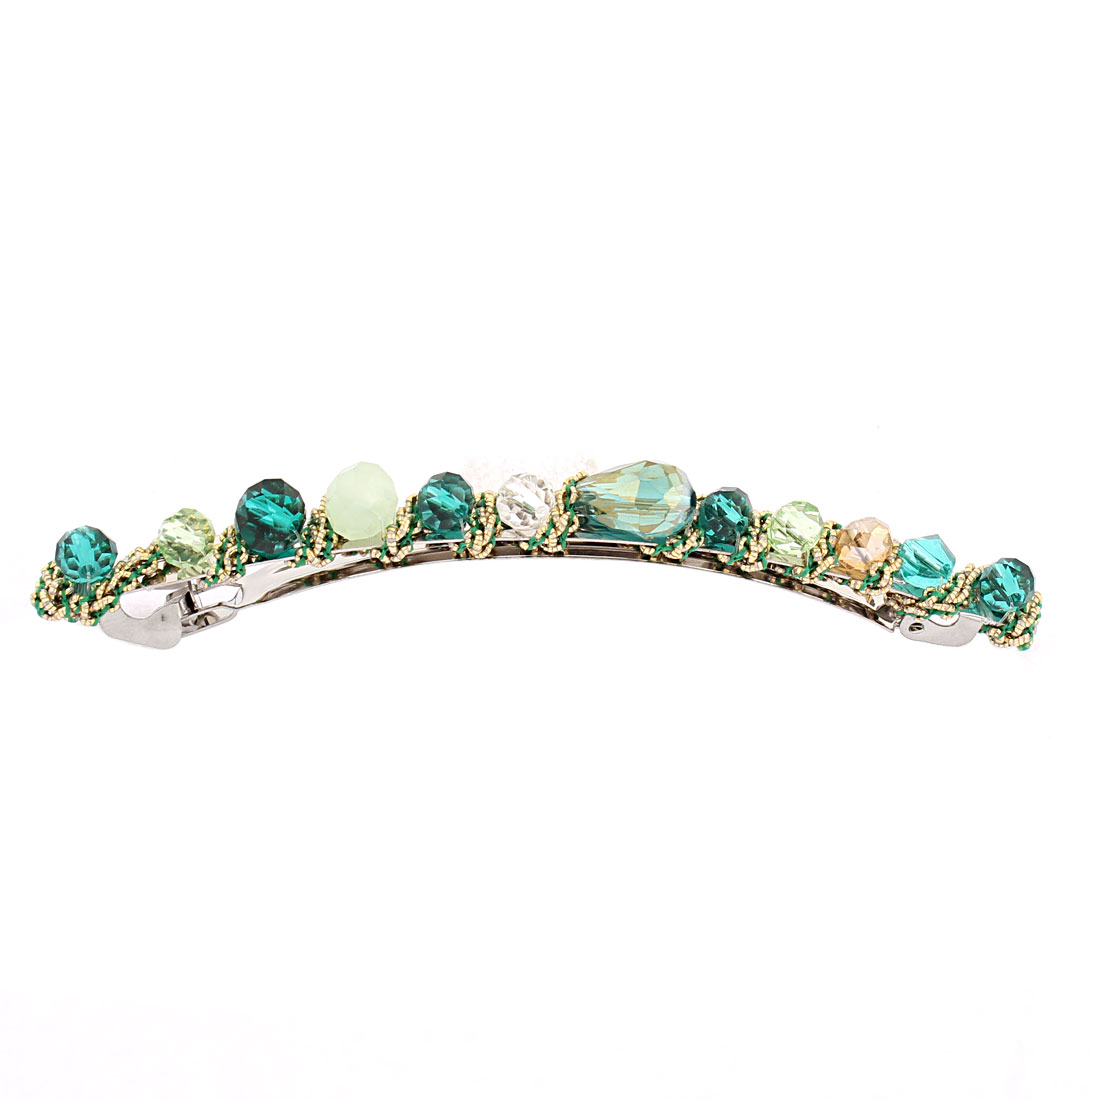 Lady Women Rhinestone Decor Metal French Clip Hairclip Barrette